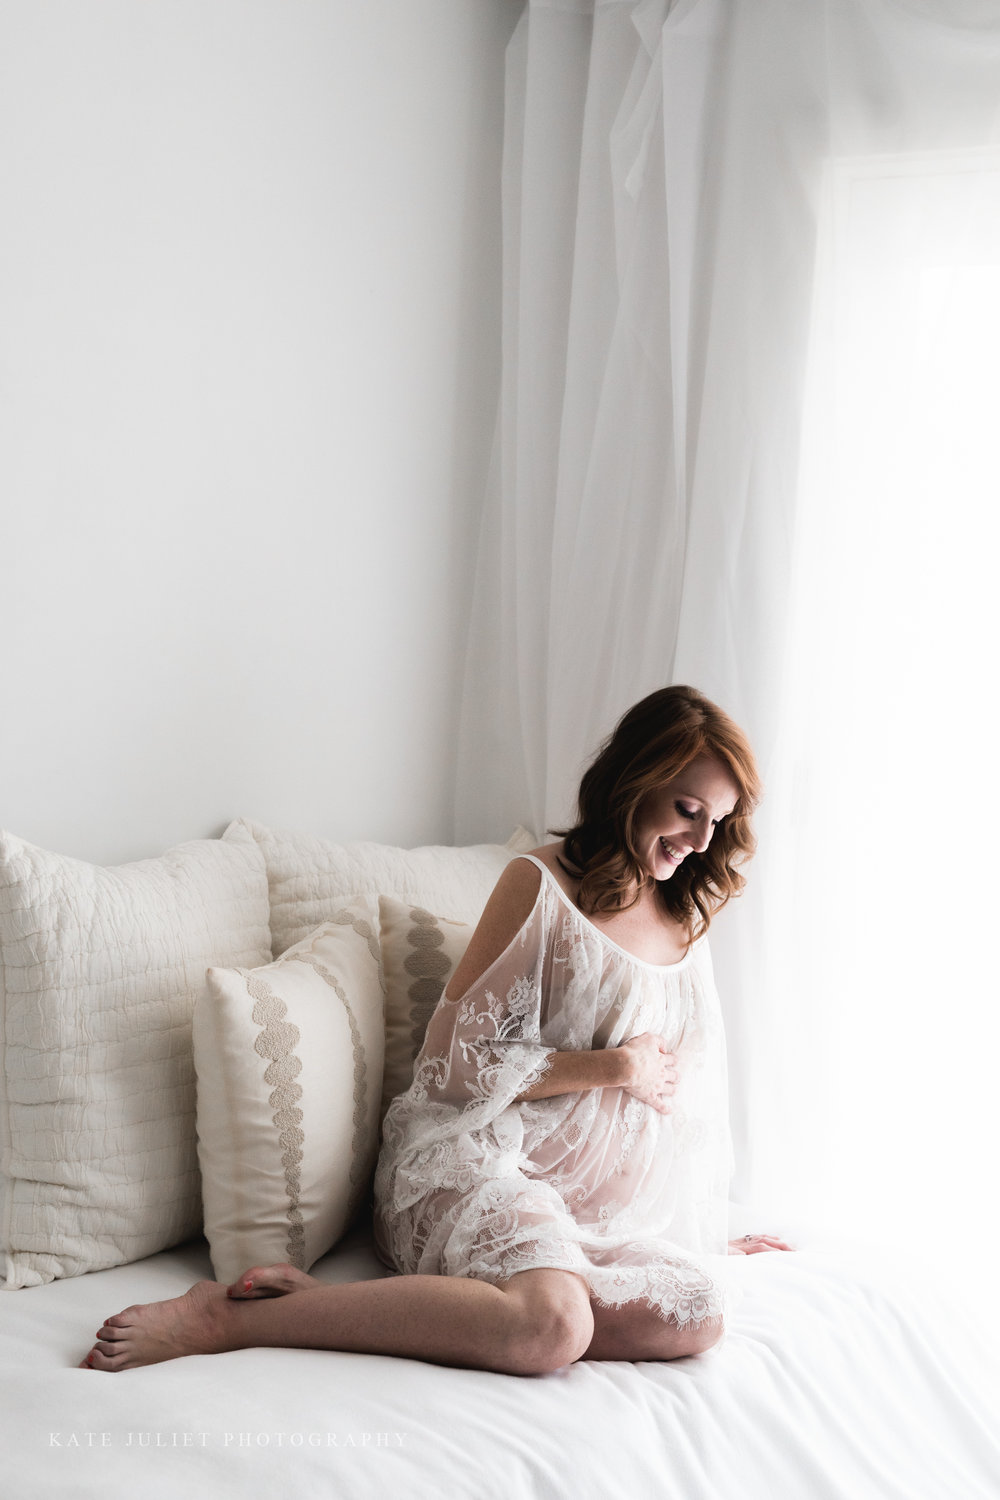 kate juliet photography - maternity - web-9.jpg